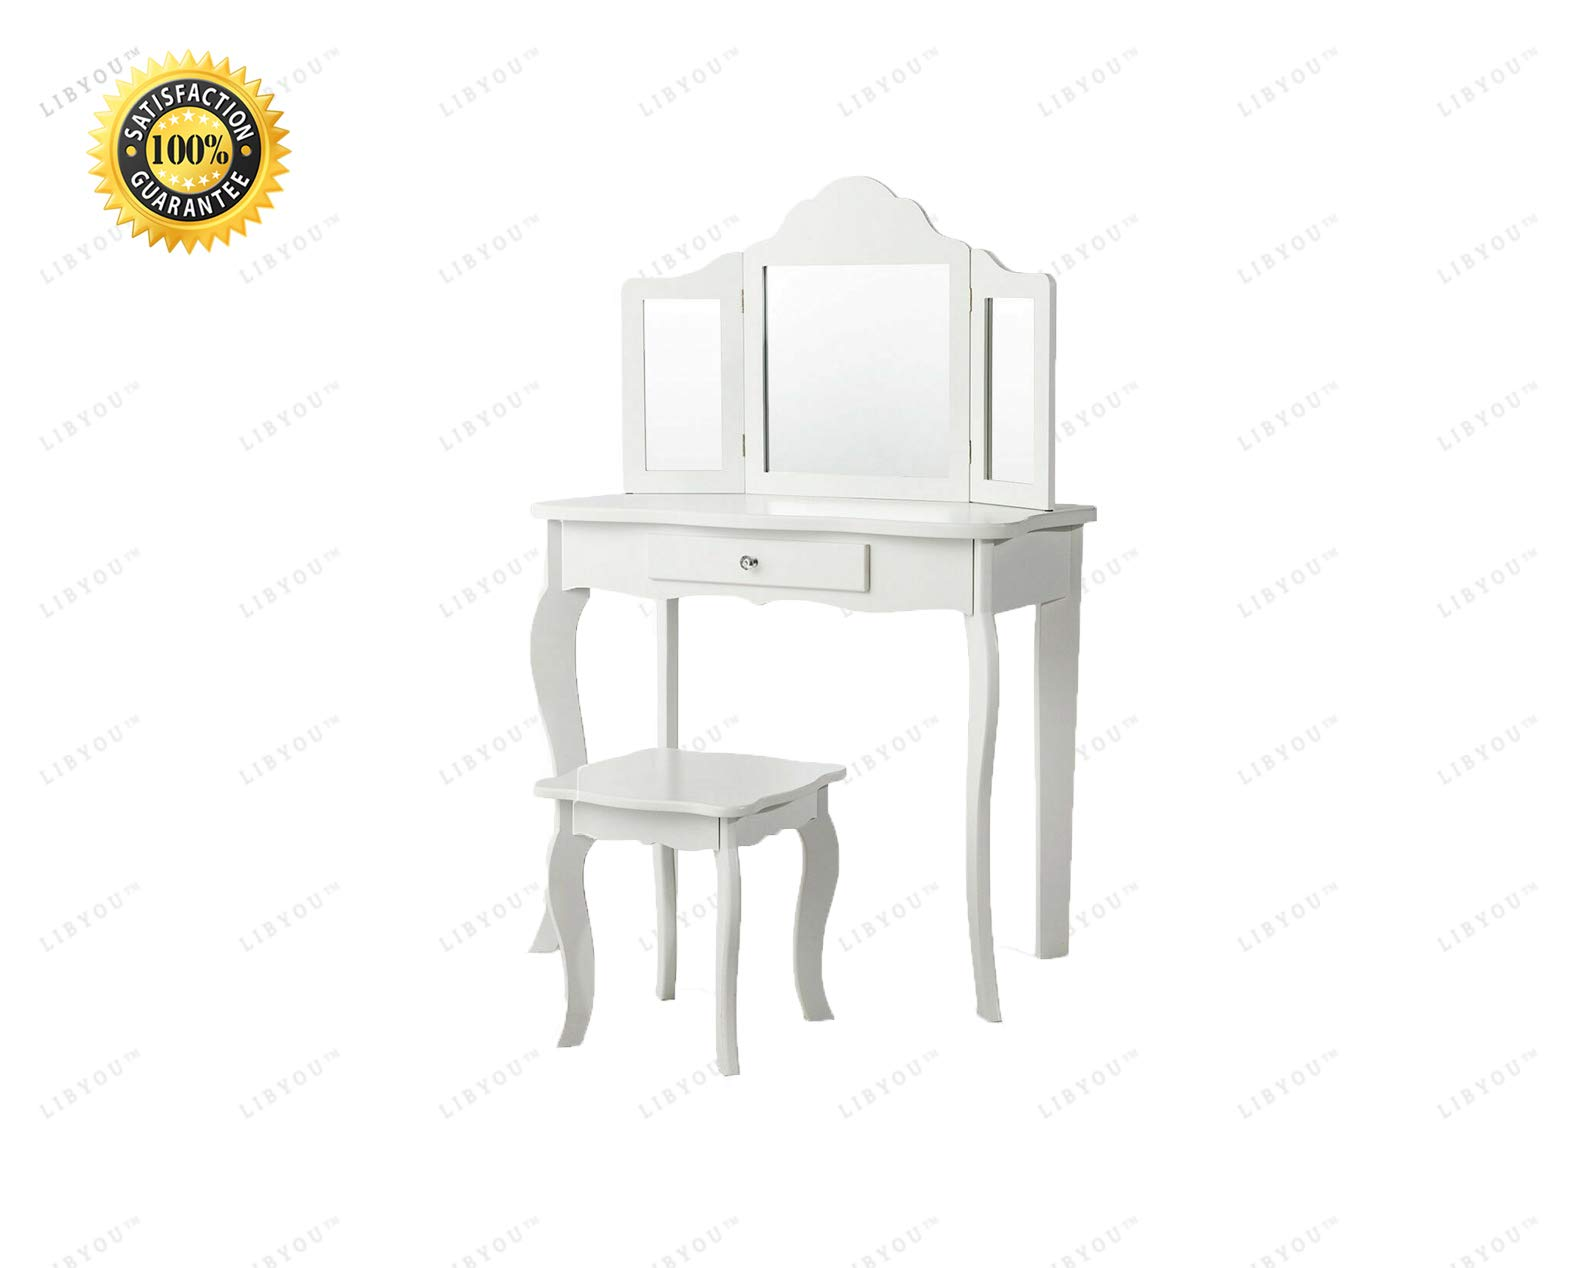 LIBYOU__Mirrored Dressing Table,Vanity Table Set,Makeup Dressing Table,Dressing Table,Vanity Makeup Table Stool Set,Wood Makeup Table Stool Set,Wood Makeup Dressing Table,Mirror Makeup Table